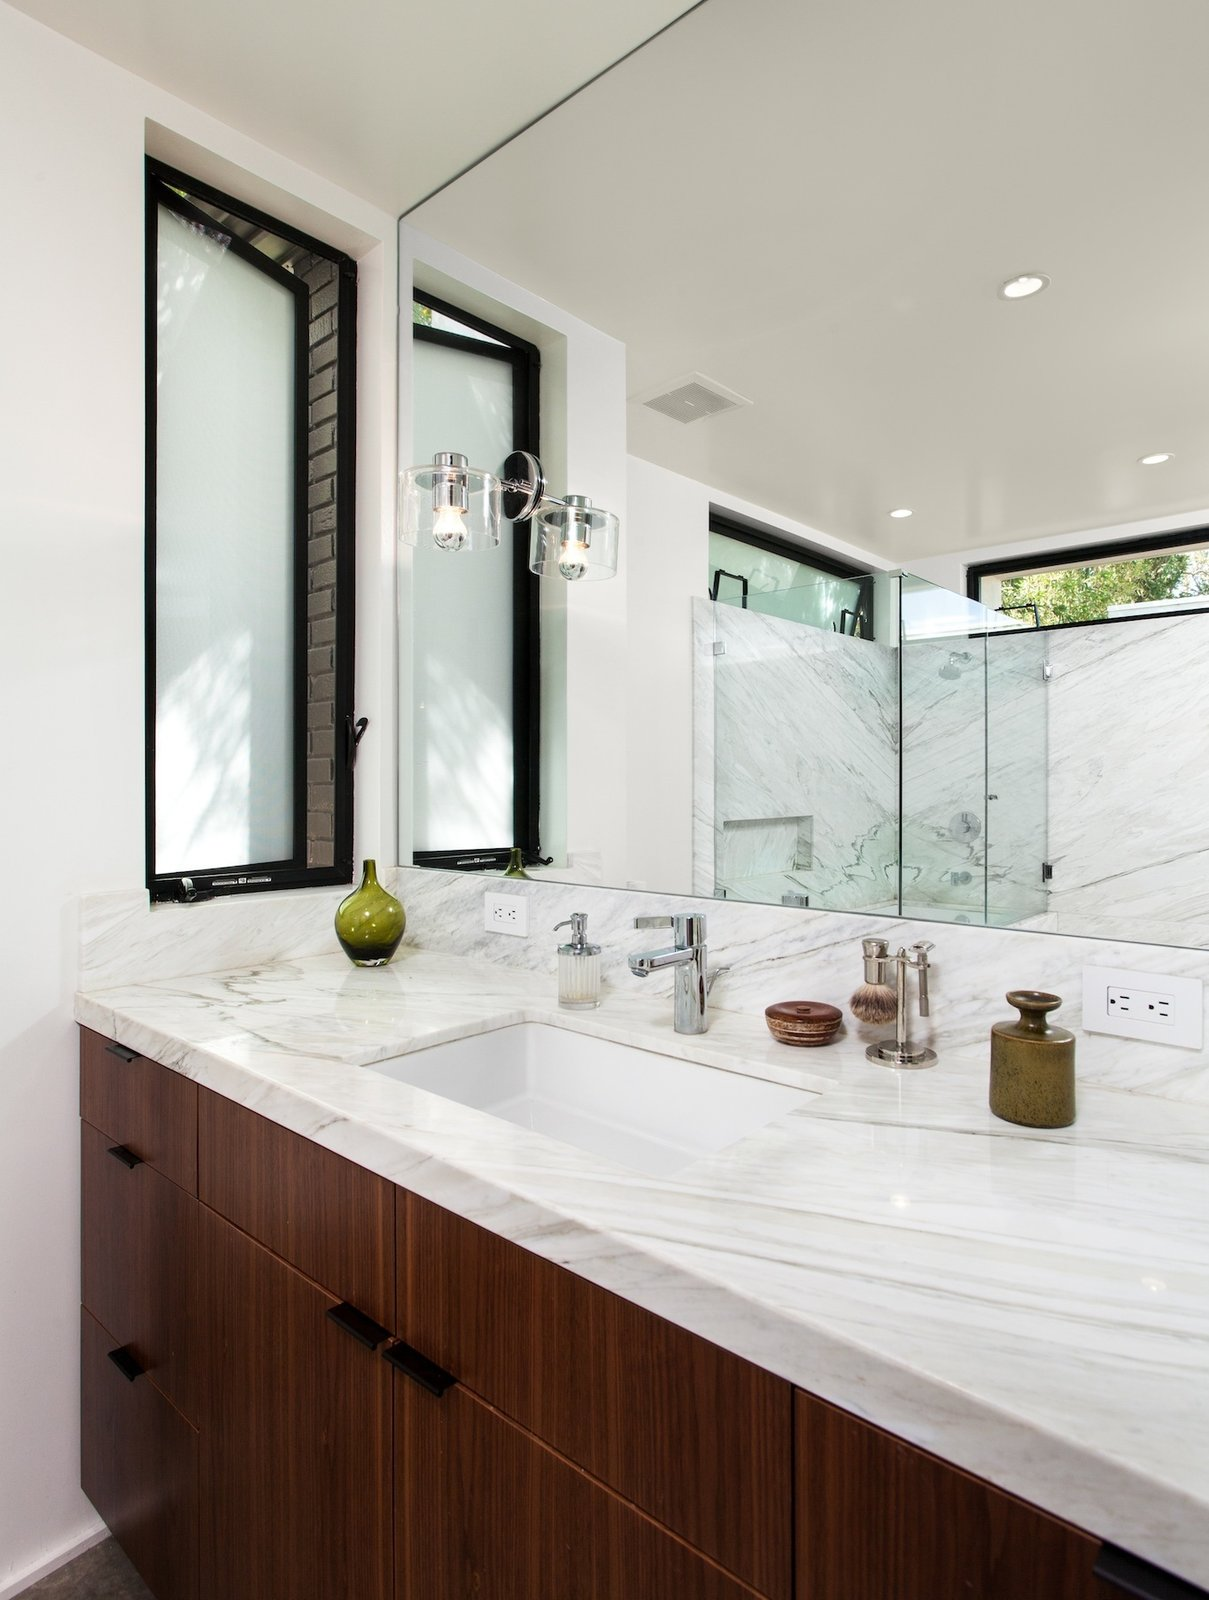 Marble Counter, Undermount Sink, Undermount Tub, Recessed Lighting, Marble Wall, Metal, Casement Window Type, and Bath Room Bathroom vanity with American Black Walnut cabinet and calacatta marble countertops and shower walls.  Ashland Residence by Hsu McCullough